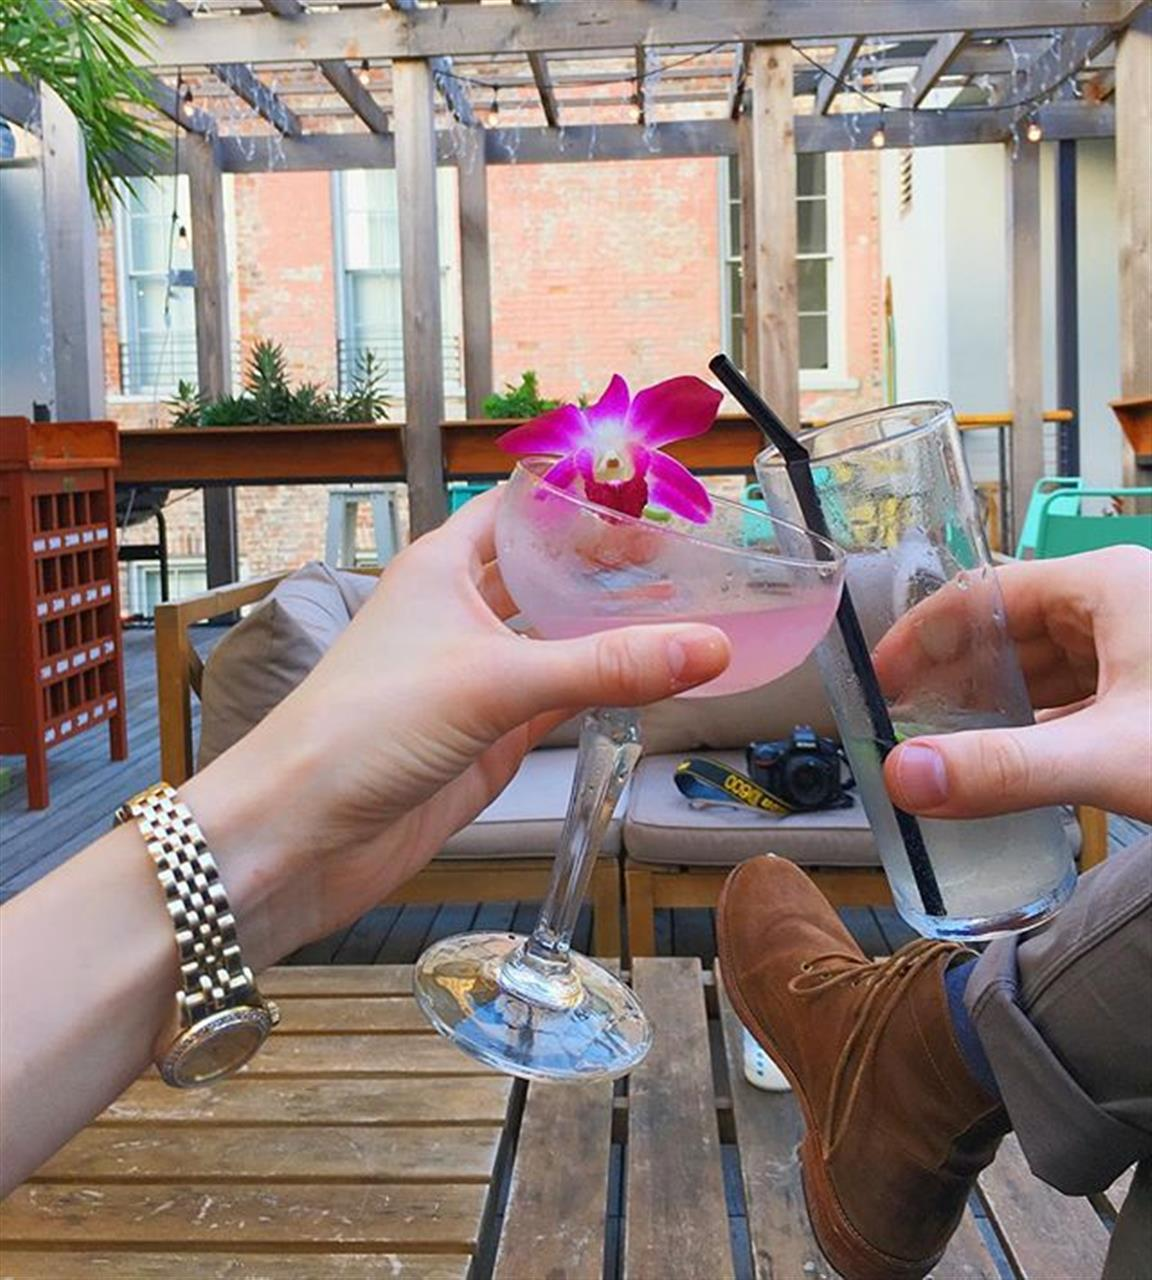 Cheers to 2017! Where are you ringing in the NOLA new year?